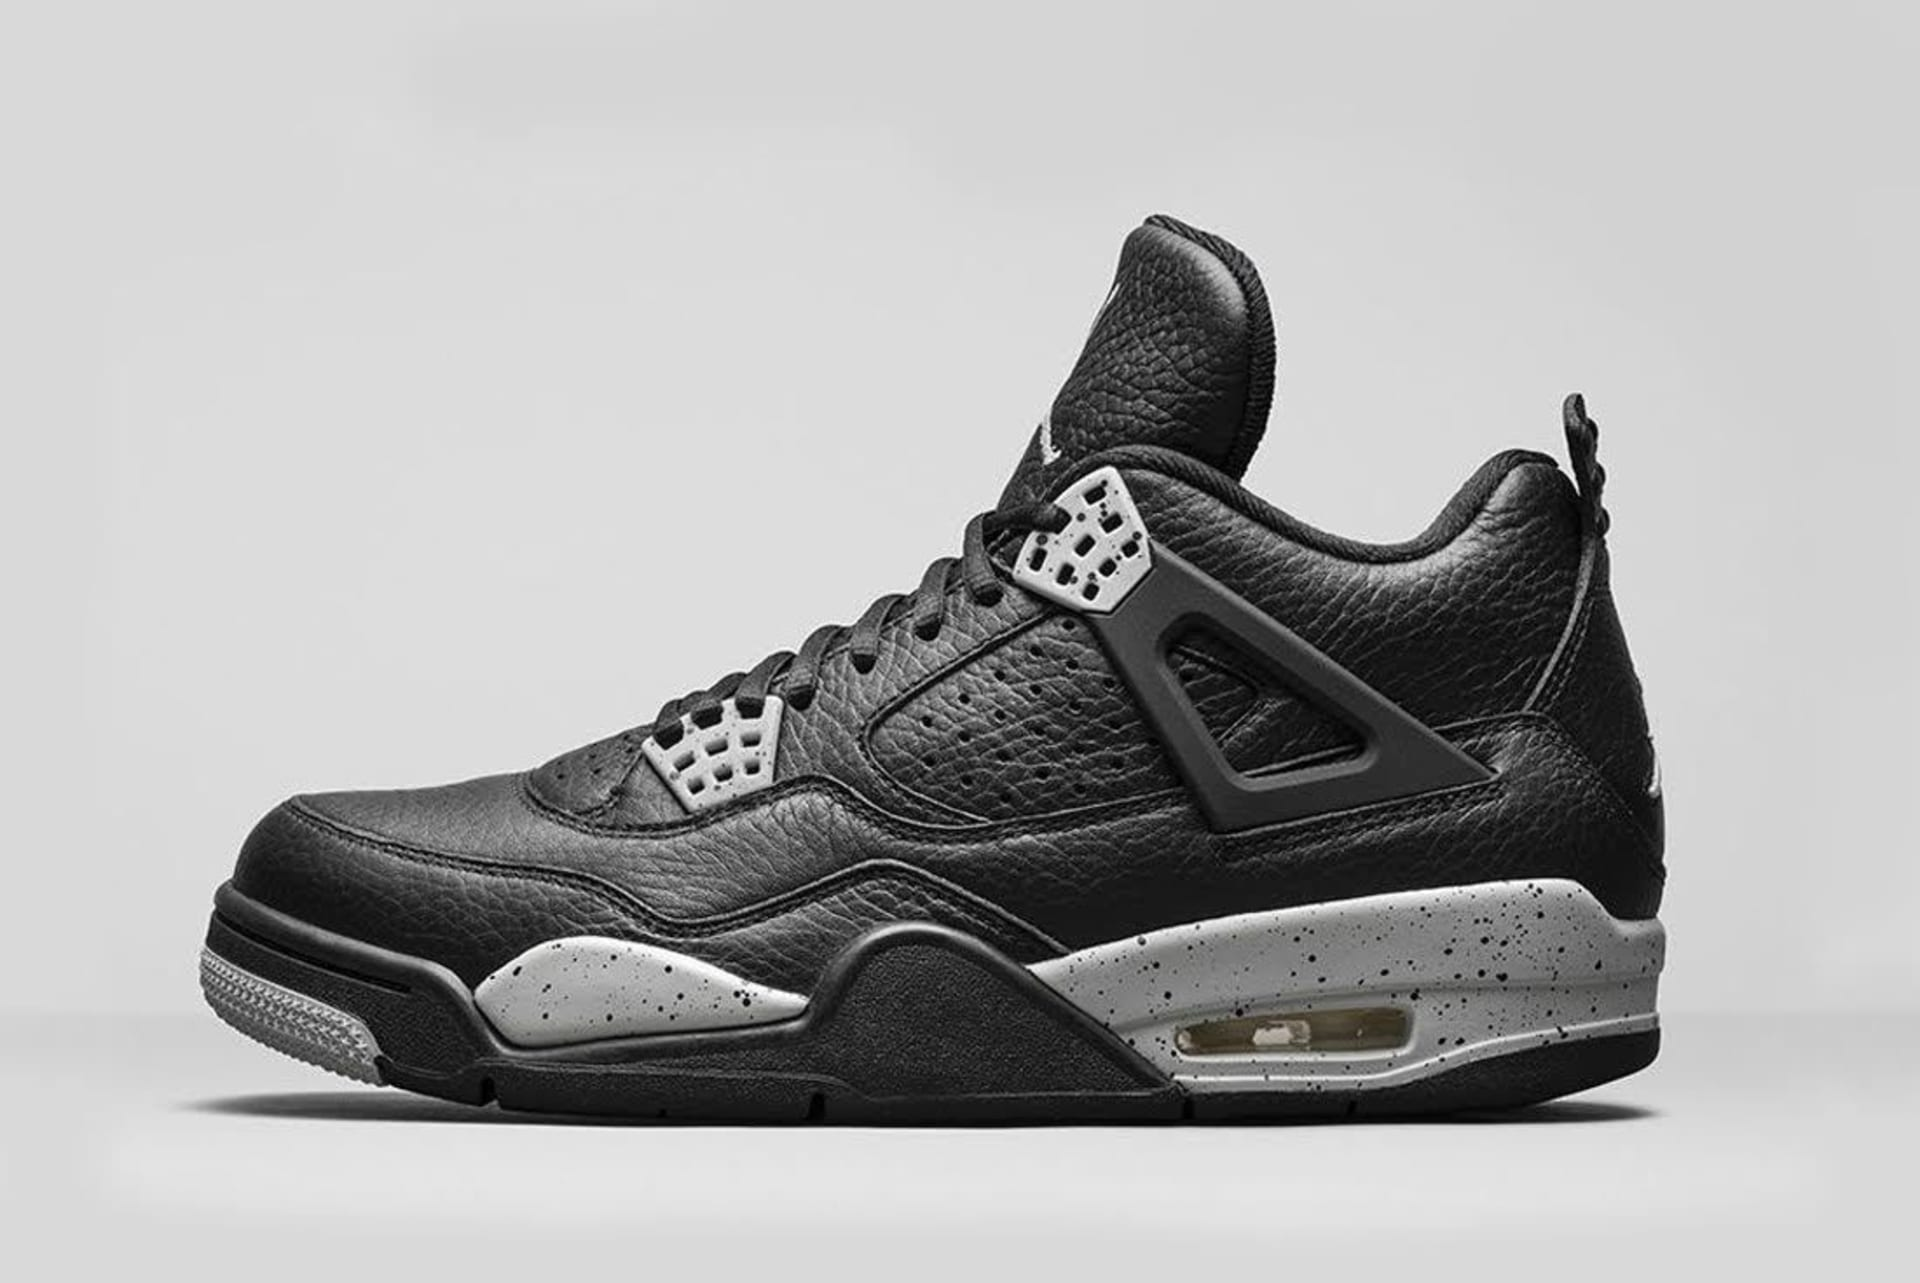 fc4a26bd5e27d3 The Best Jordans of 2015